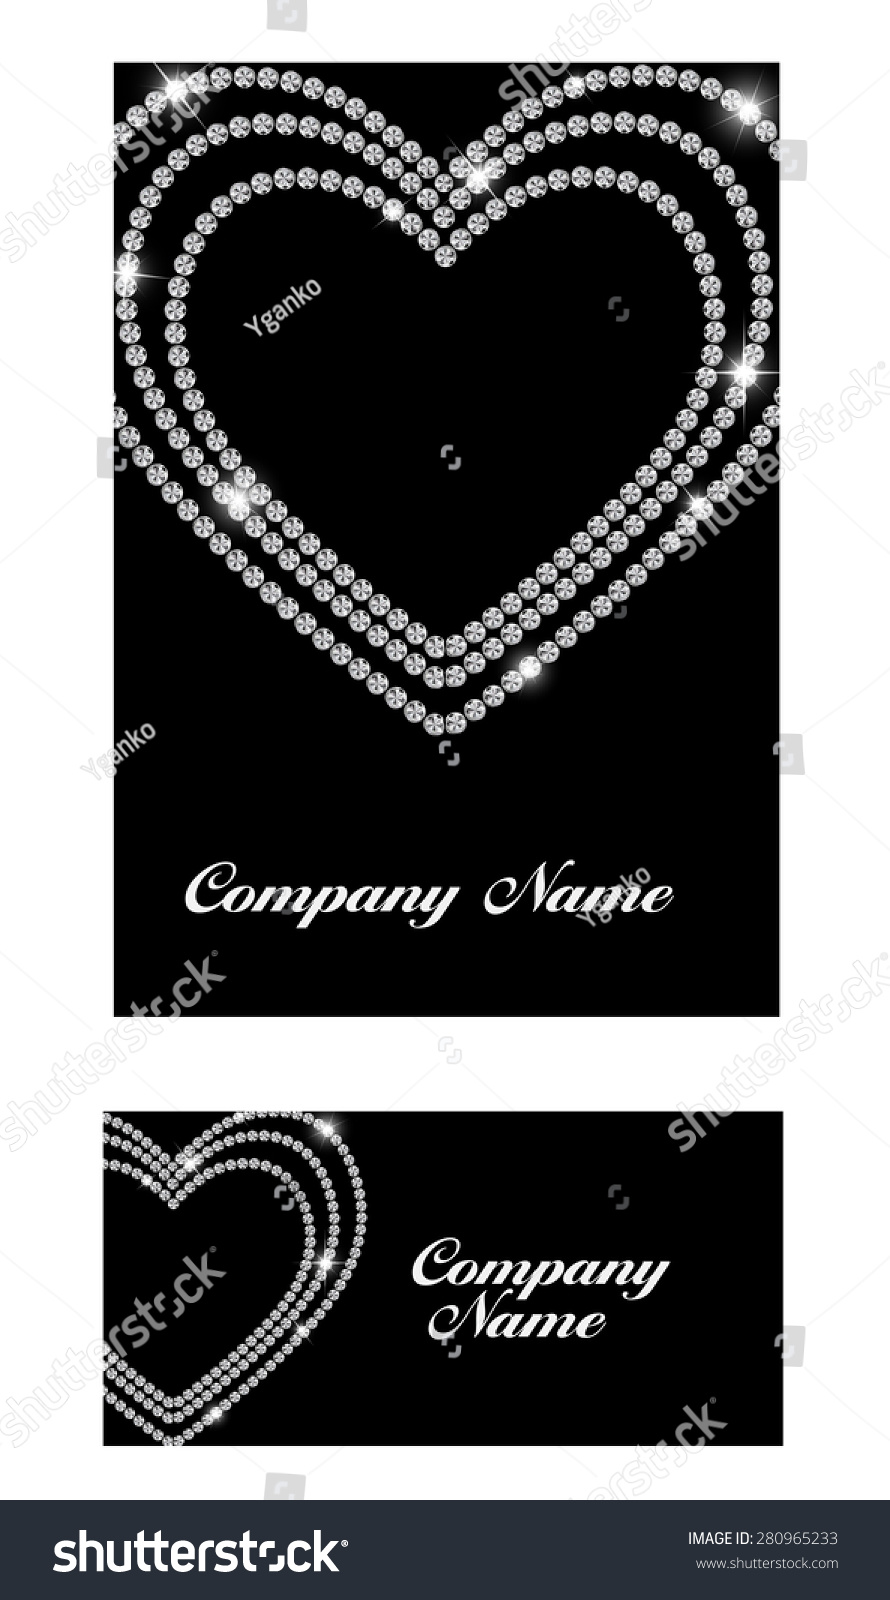 Diamond business cards images free business cards abstract luxury black diamond business card stock vector 280965233 abstract luxury black diamond business card vector magicingreecefo Choice Image